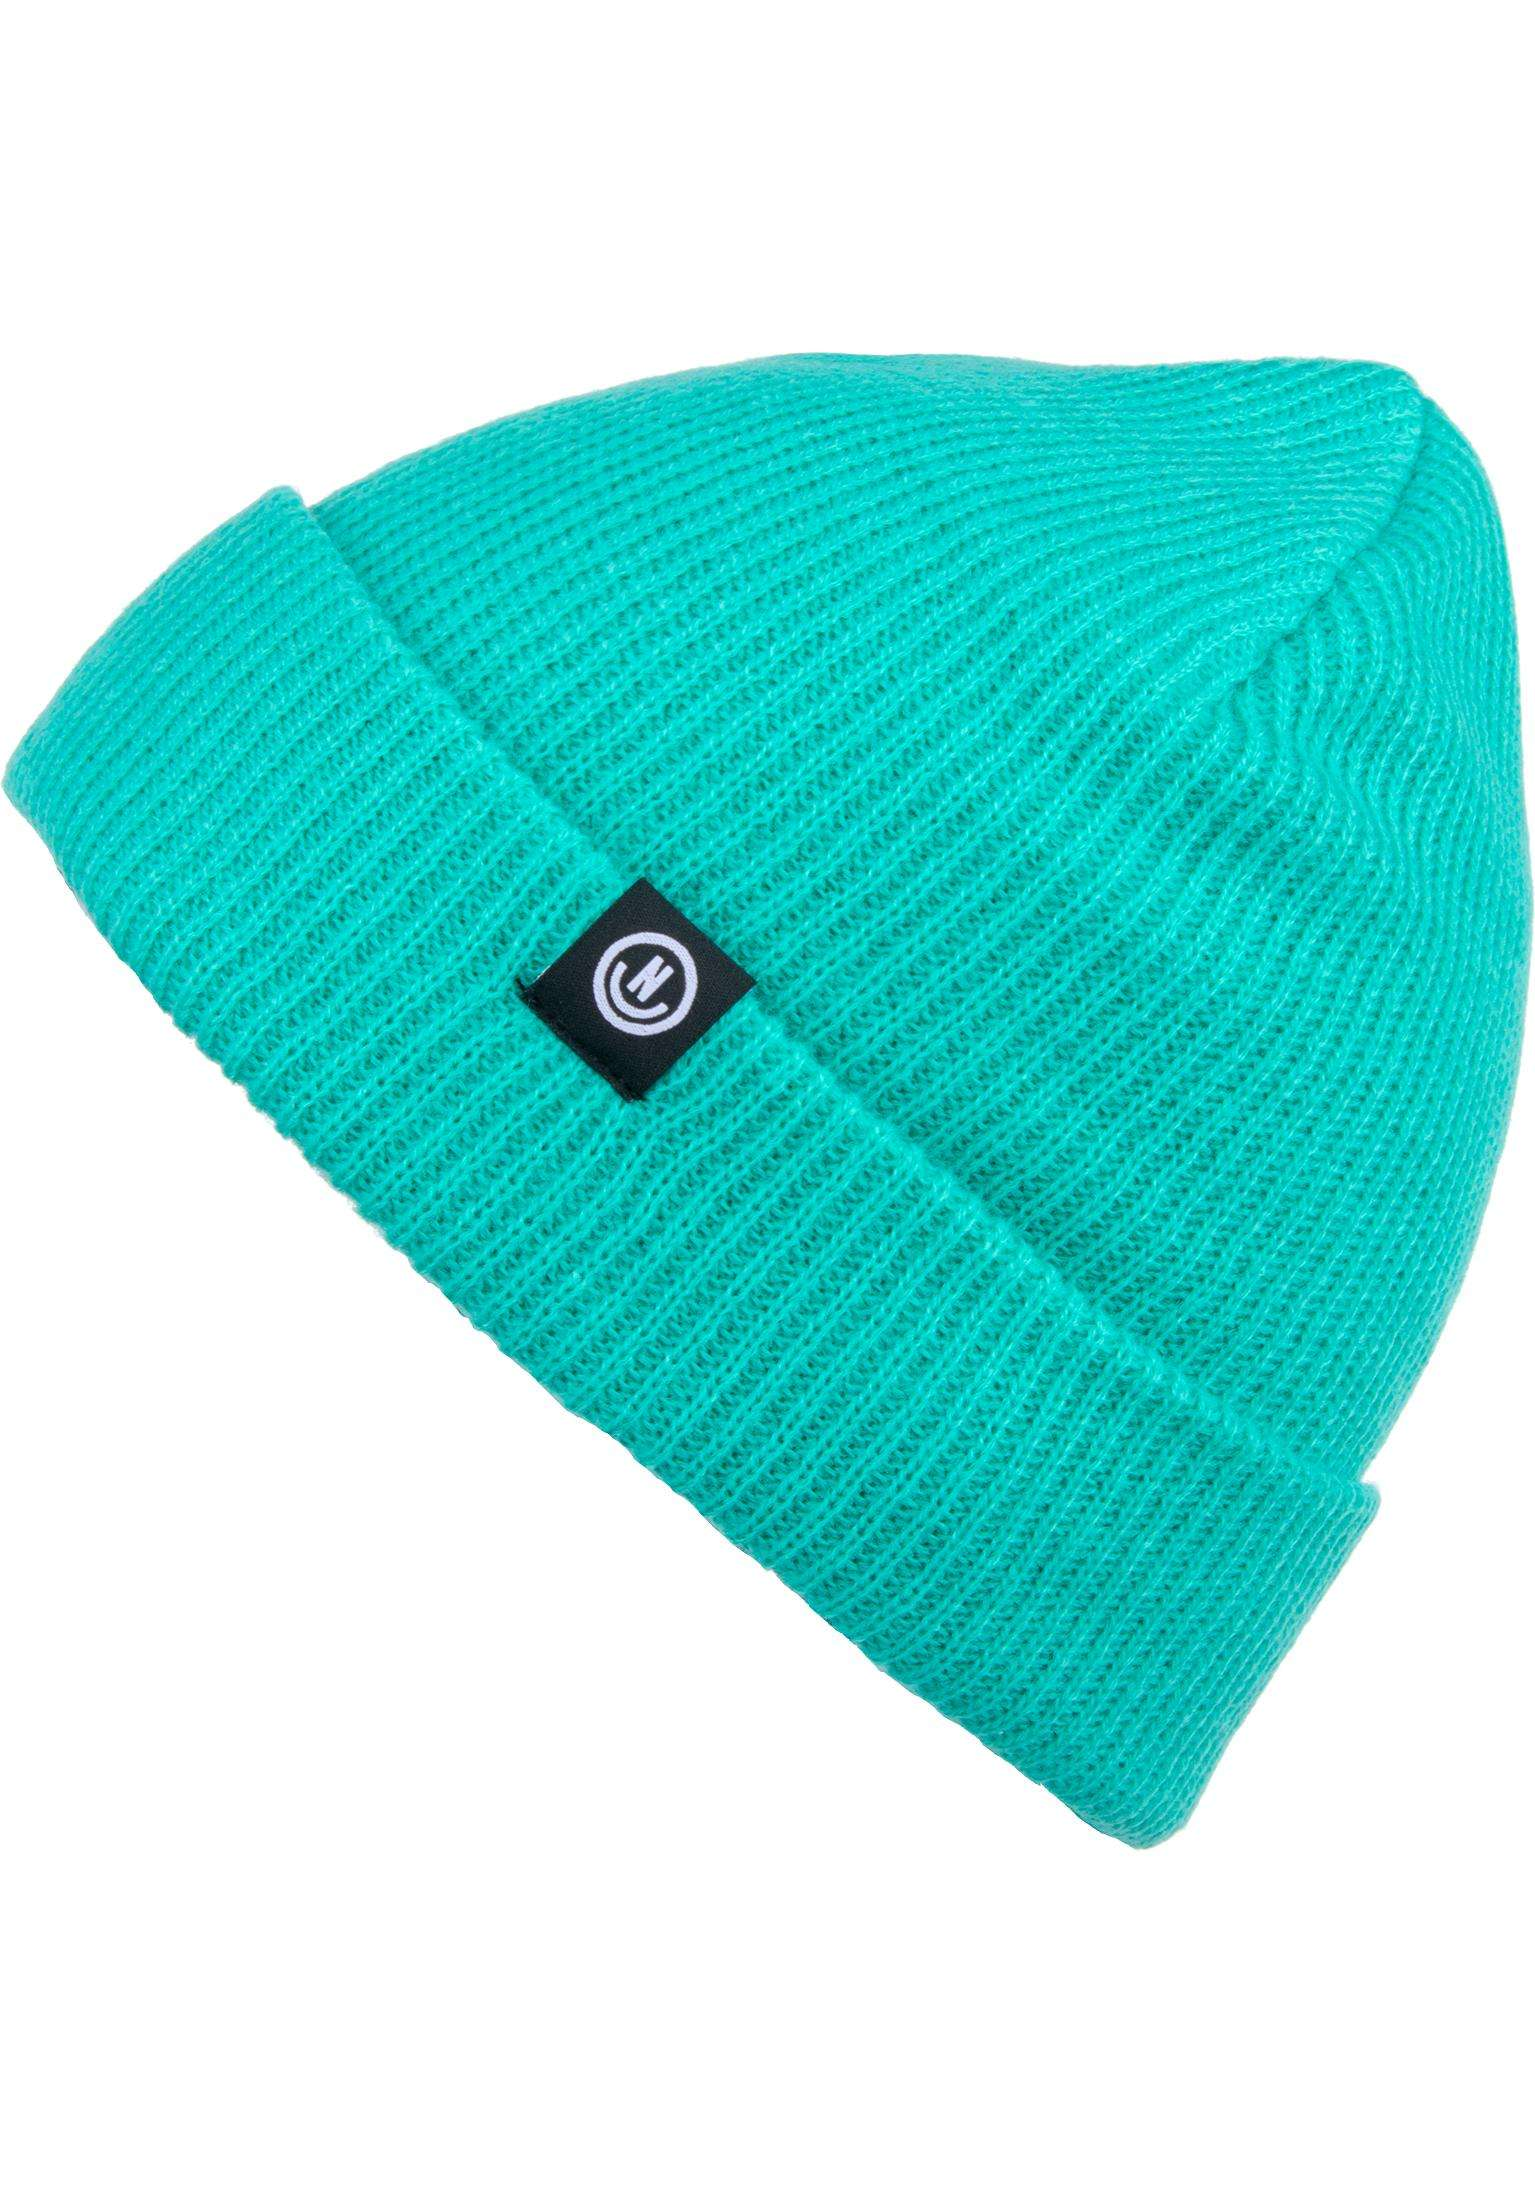 2050f69eb9753 Serge Neff Beanies in teal for Men